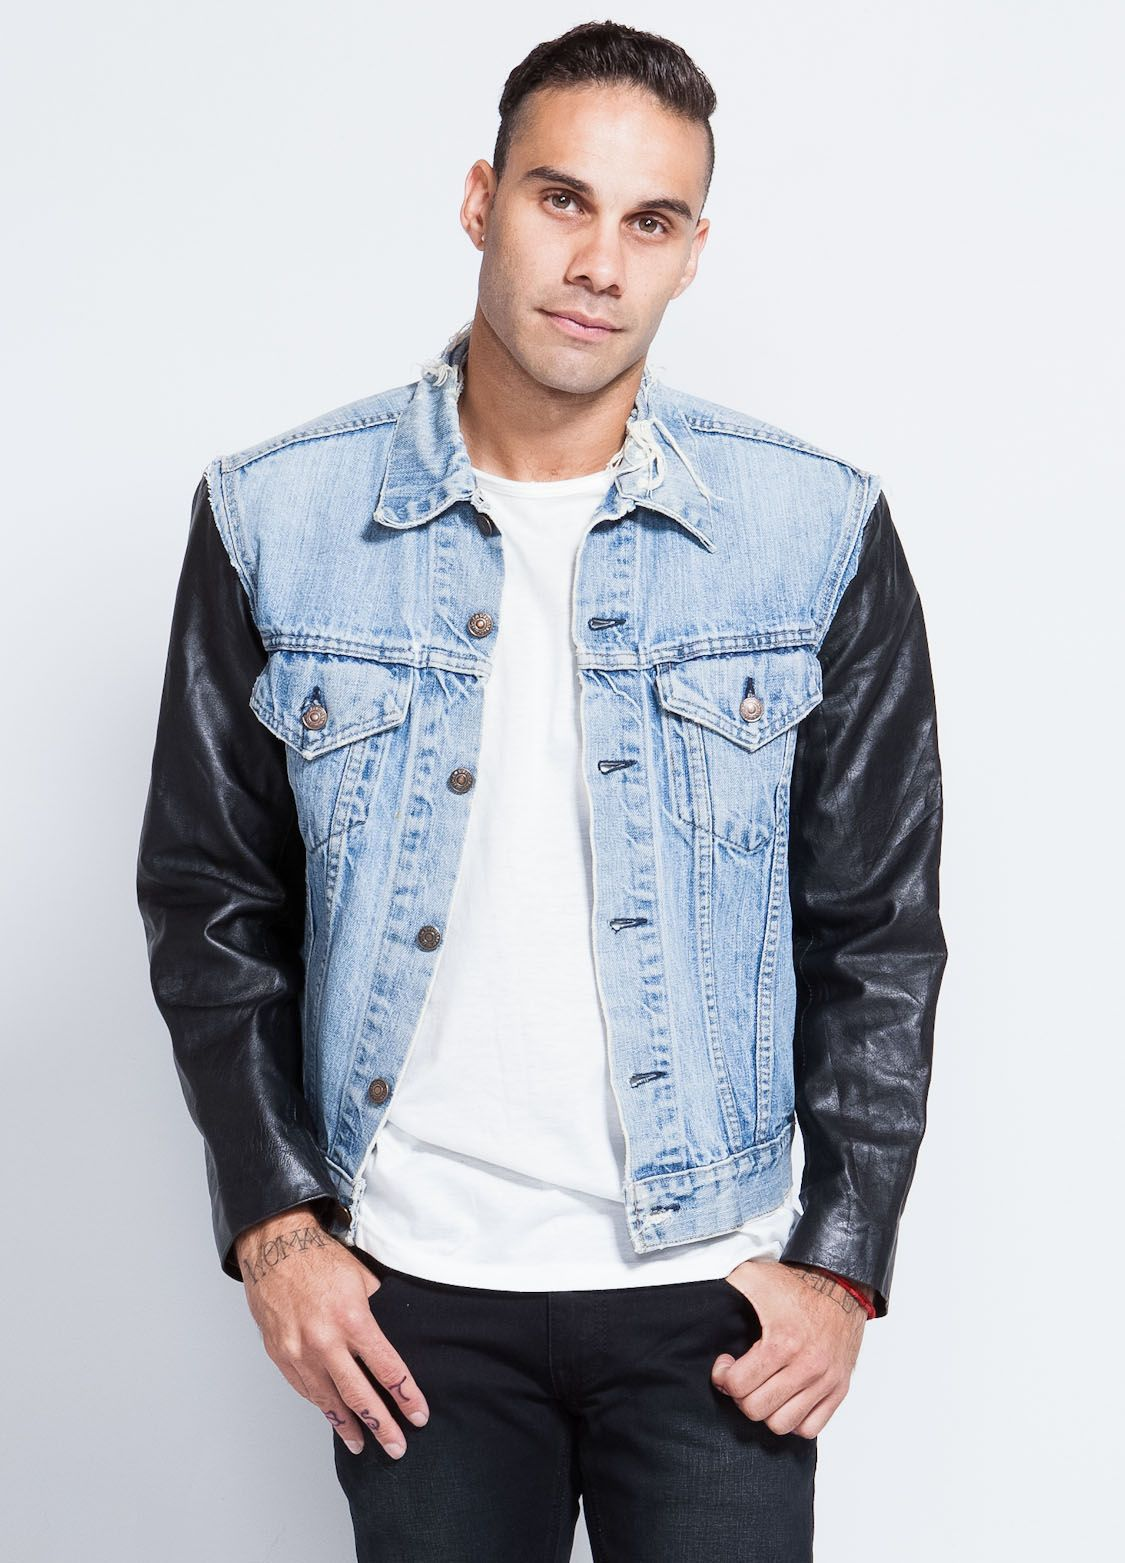 This levi's vintage inspired denim jacket features leather